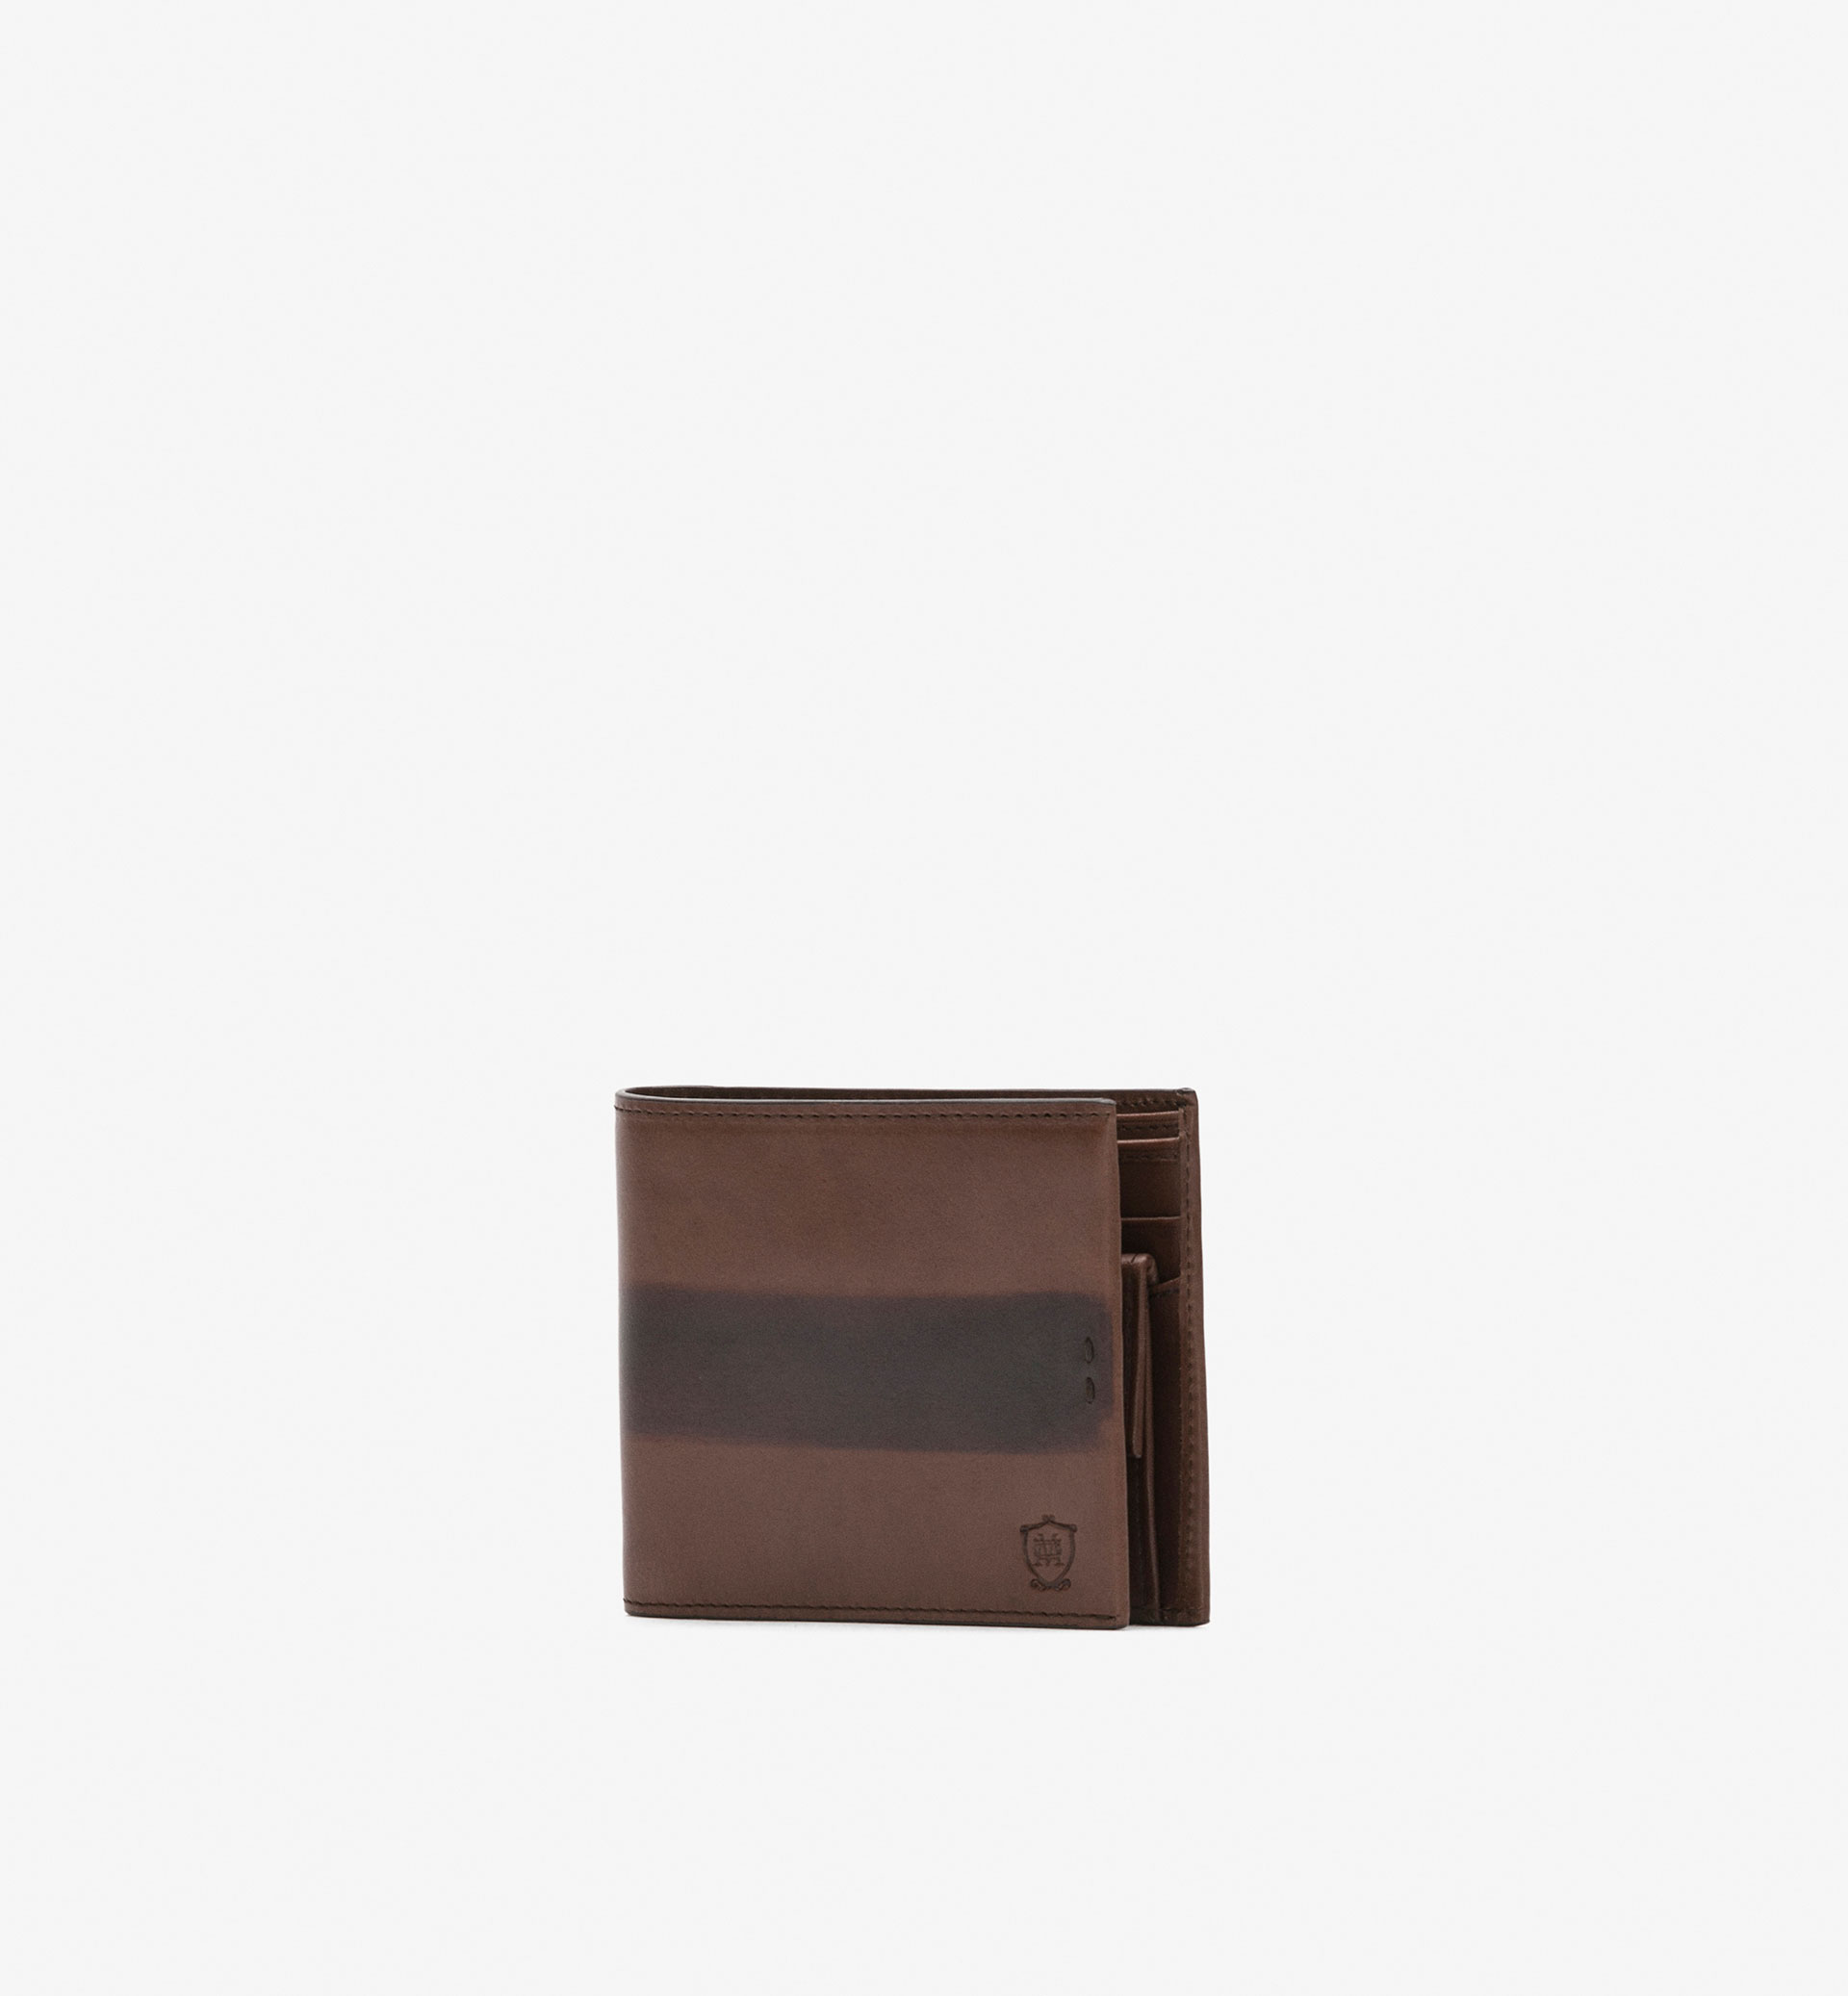 TWO-TONE LEATHER WALLET